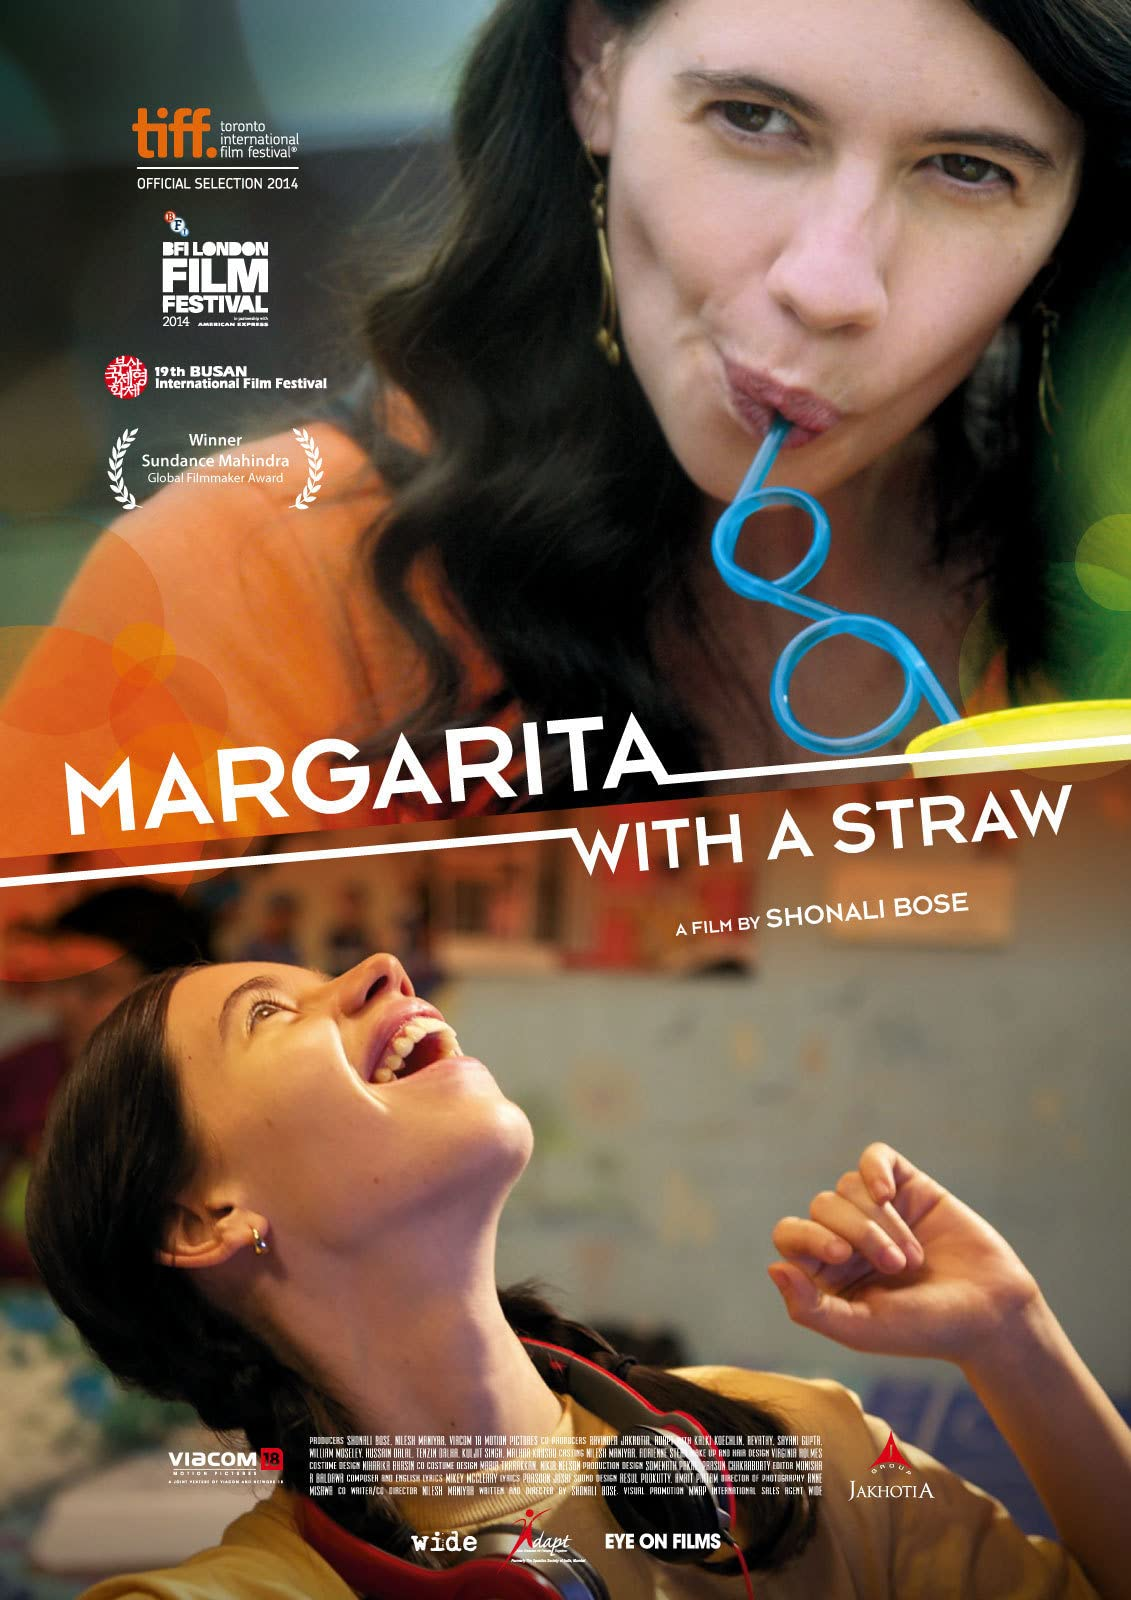 Margarita with a Straw 2014